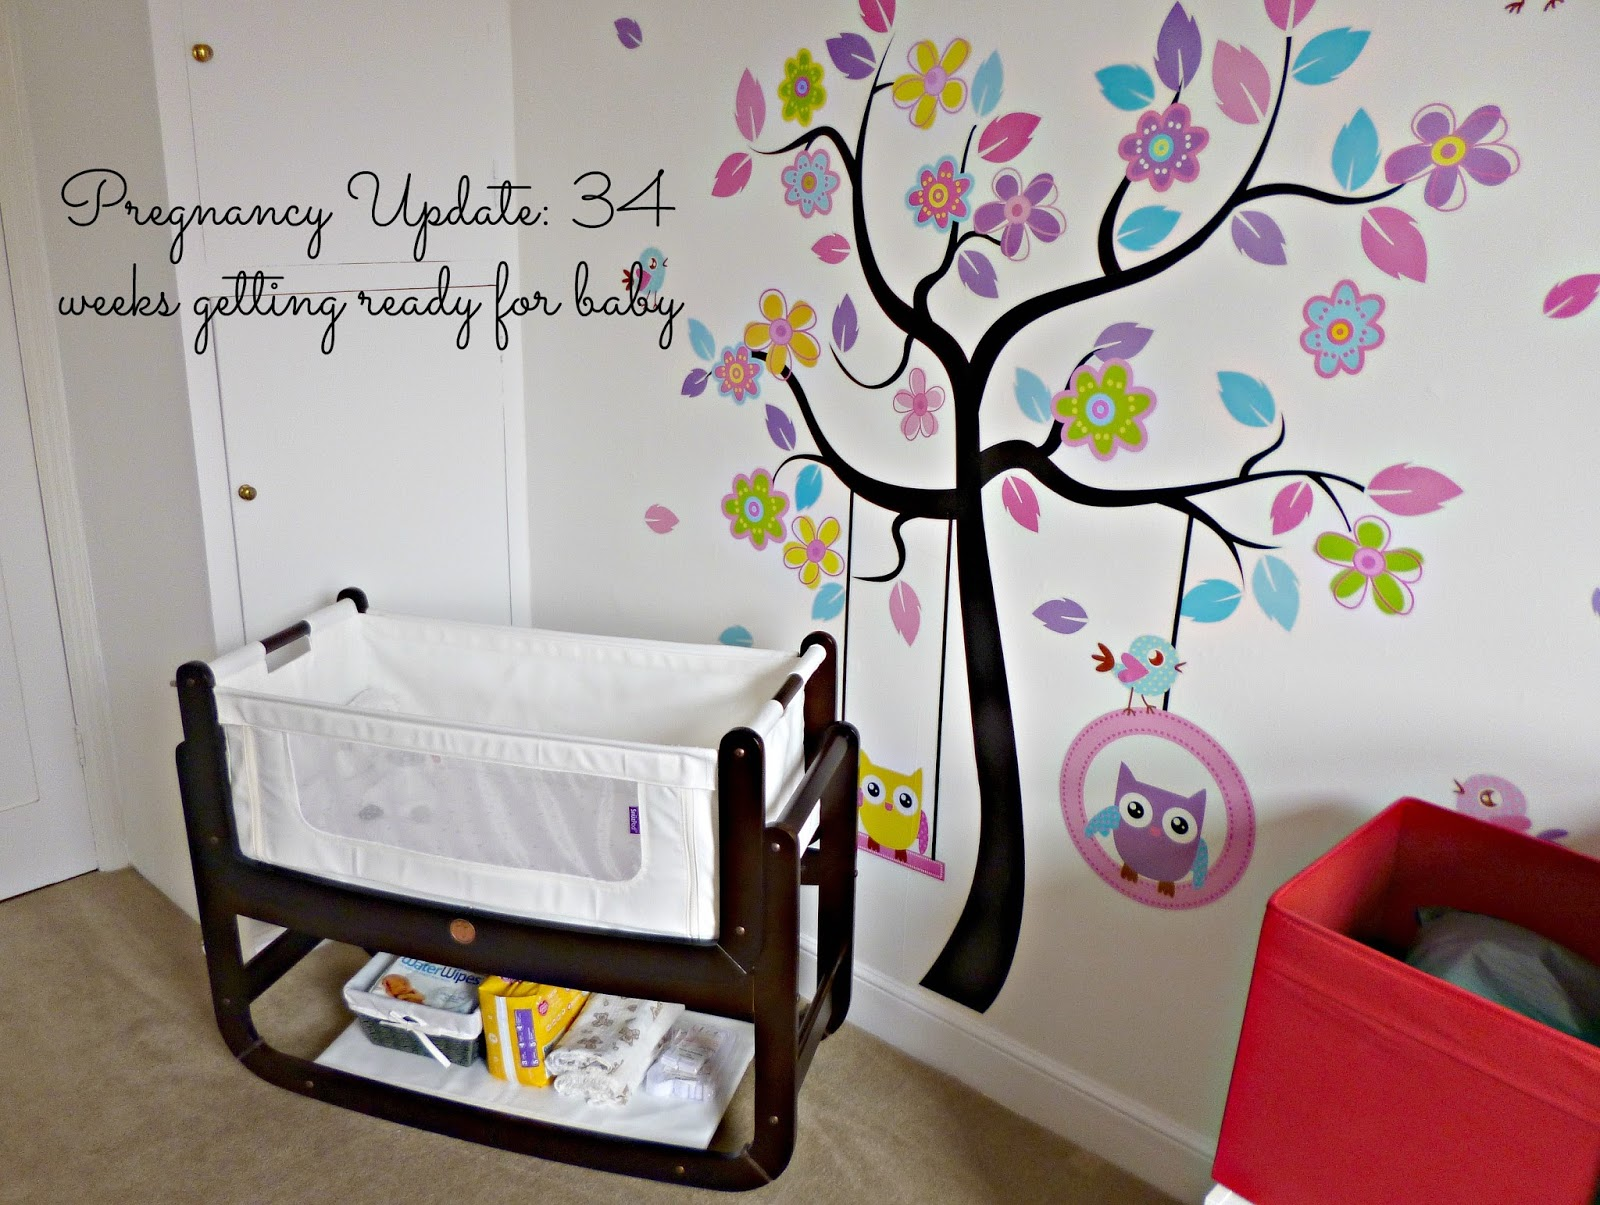 Pregnancy update: 34 Weeks getting ready for baby